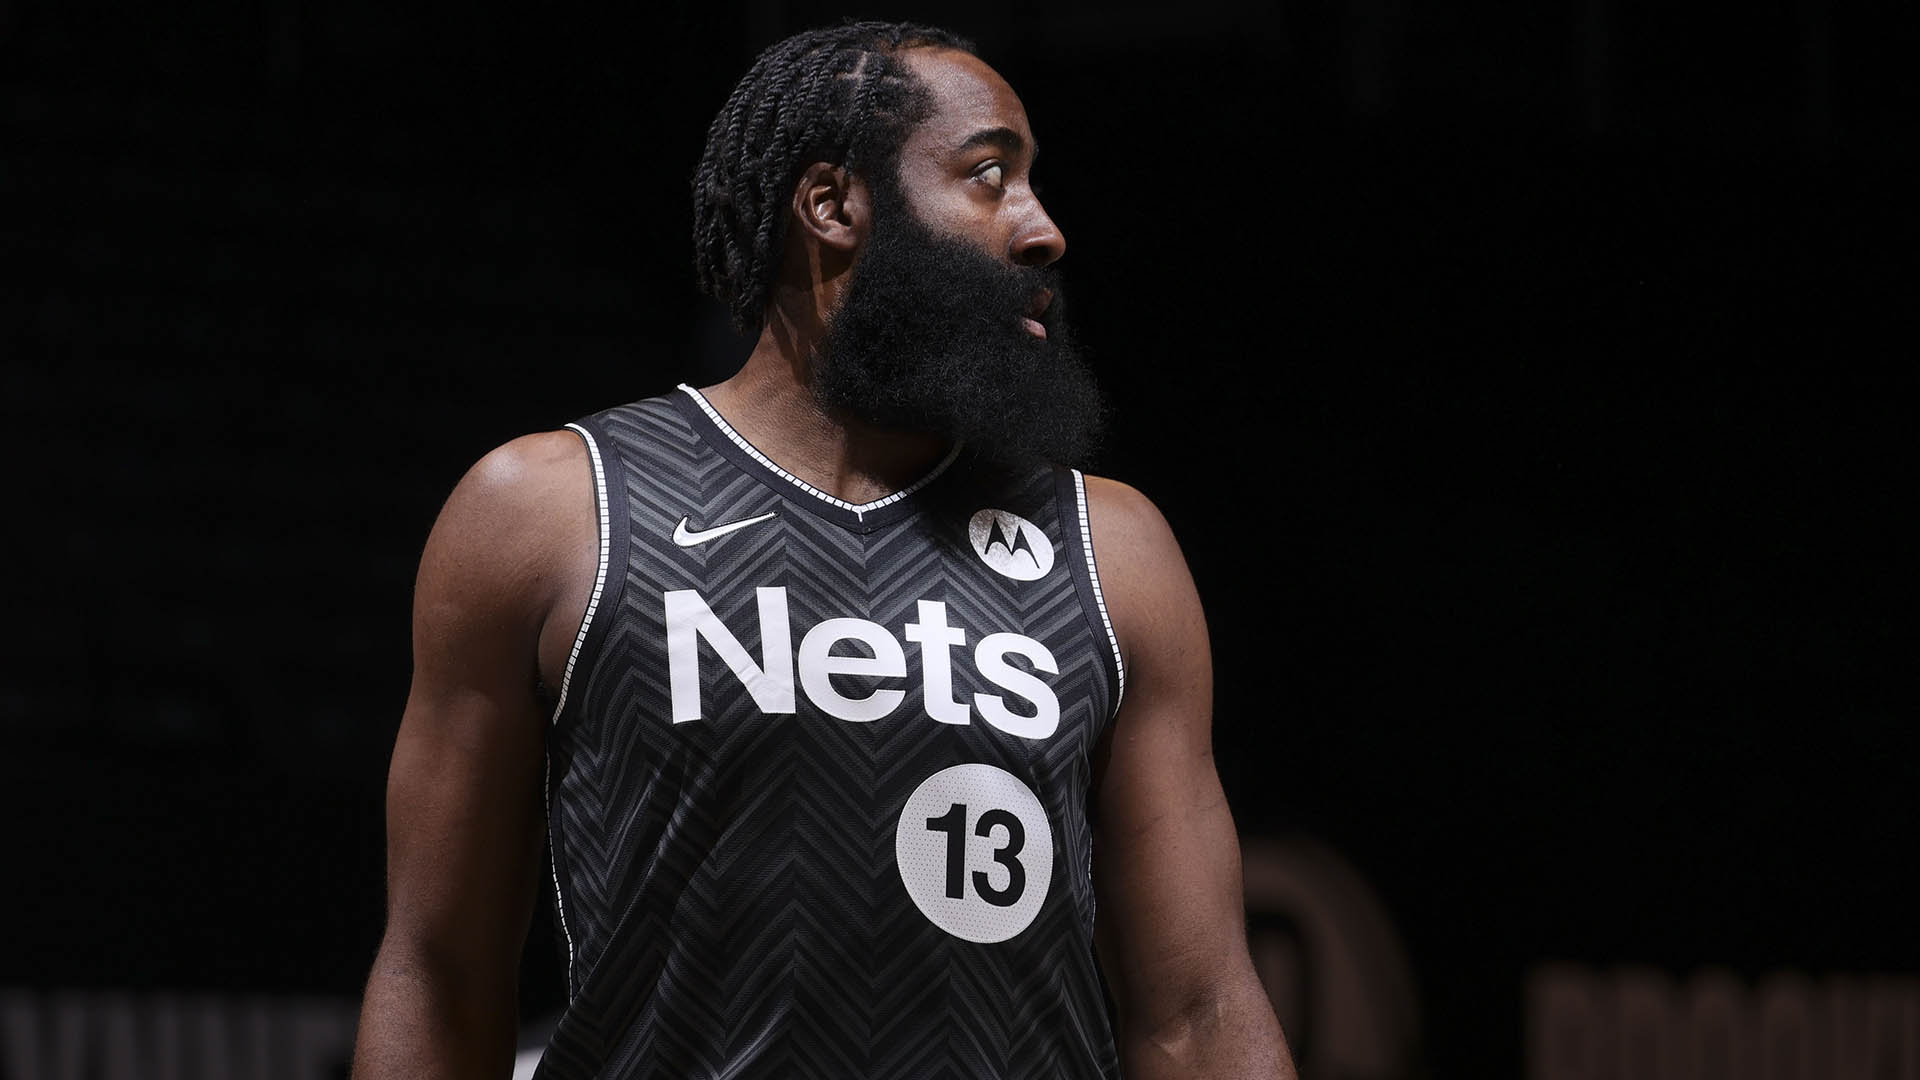 James Harden (hamstring) out approximately 10 days as Kevin Durant nears return